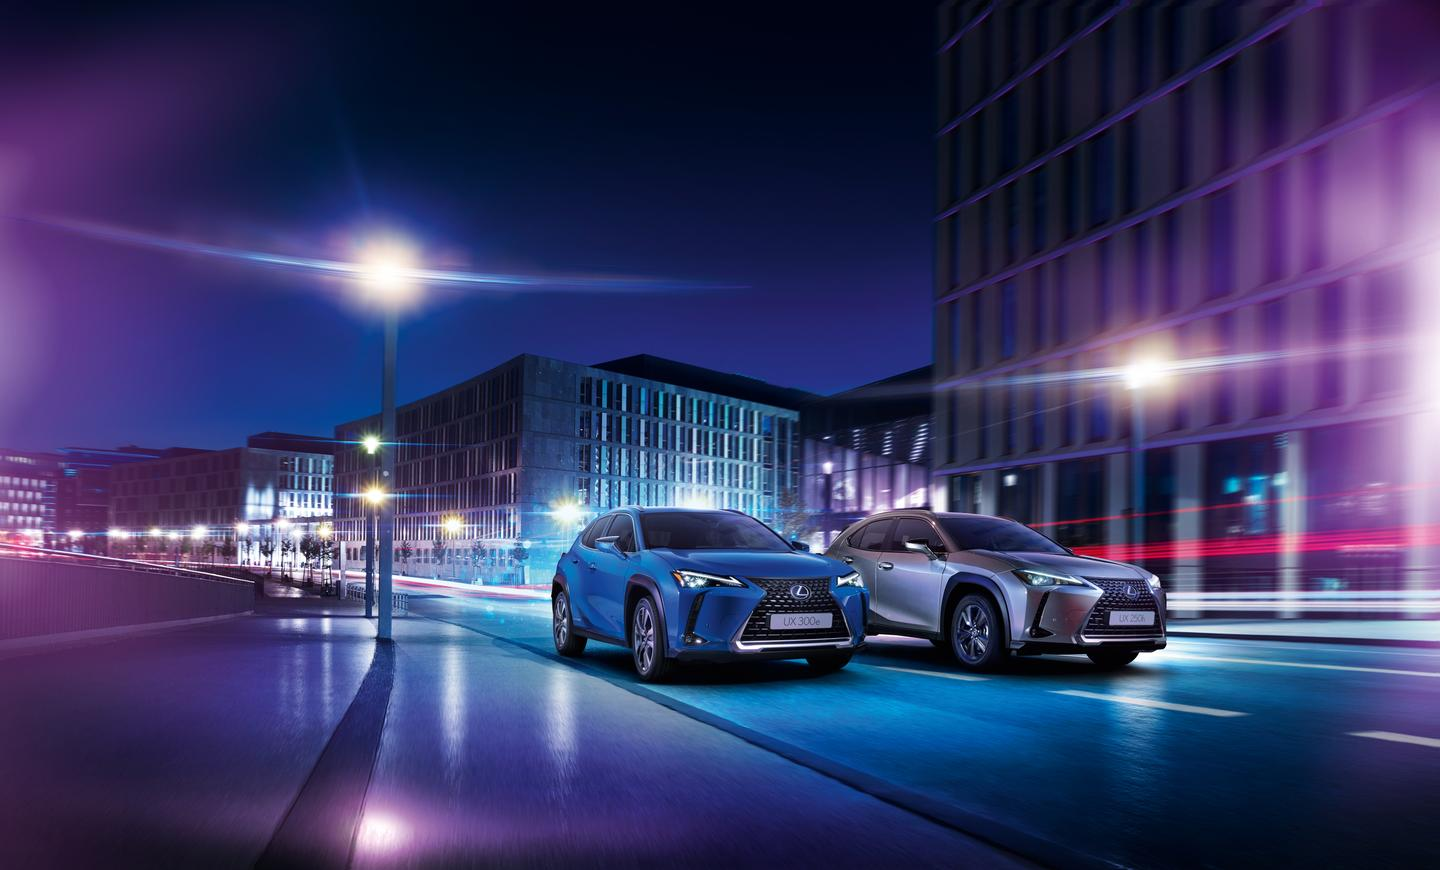 Lexus has made its first move into the world of full electrification